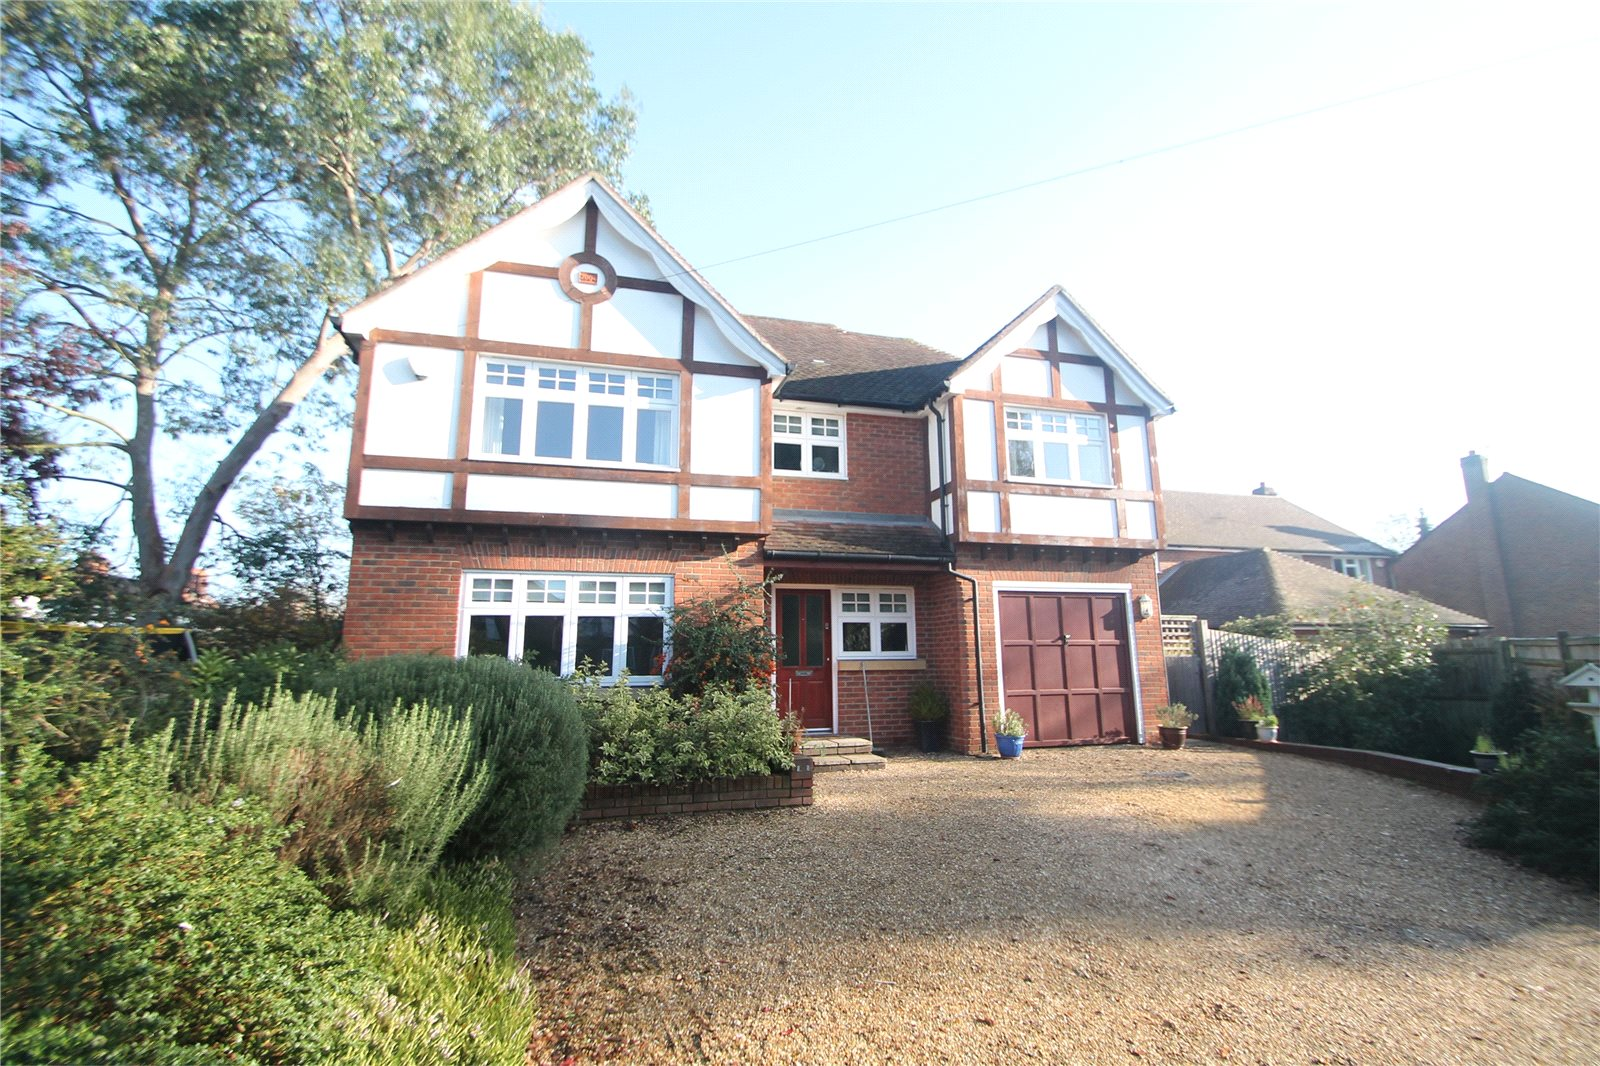 4 Bedrooms Detached House for sale in Yardley Close Tonbridge Kent TN9